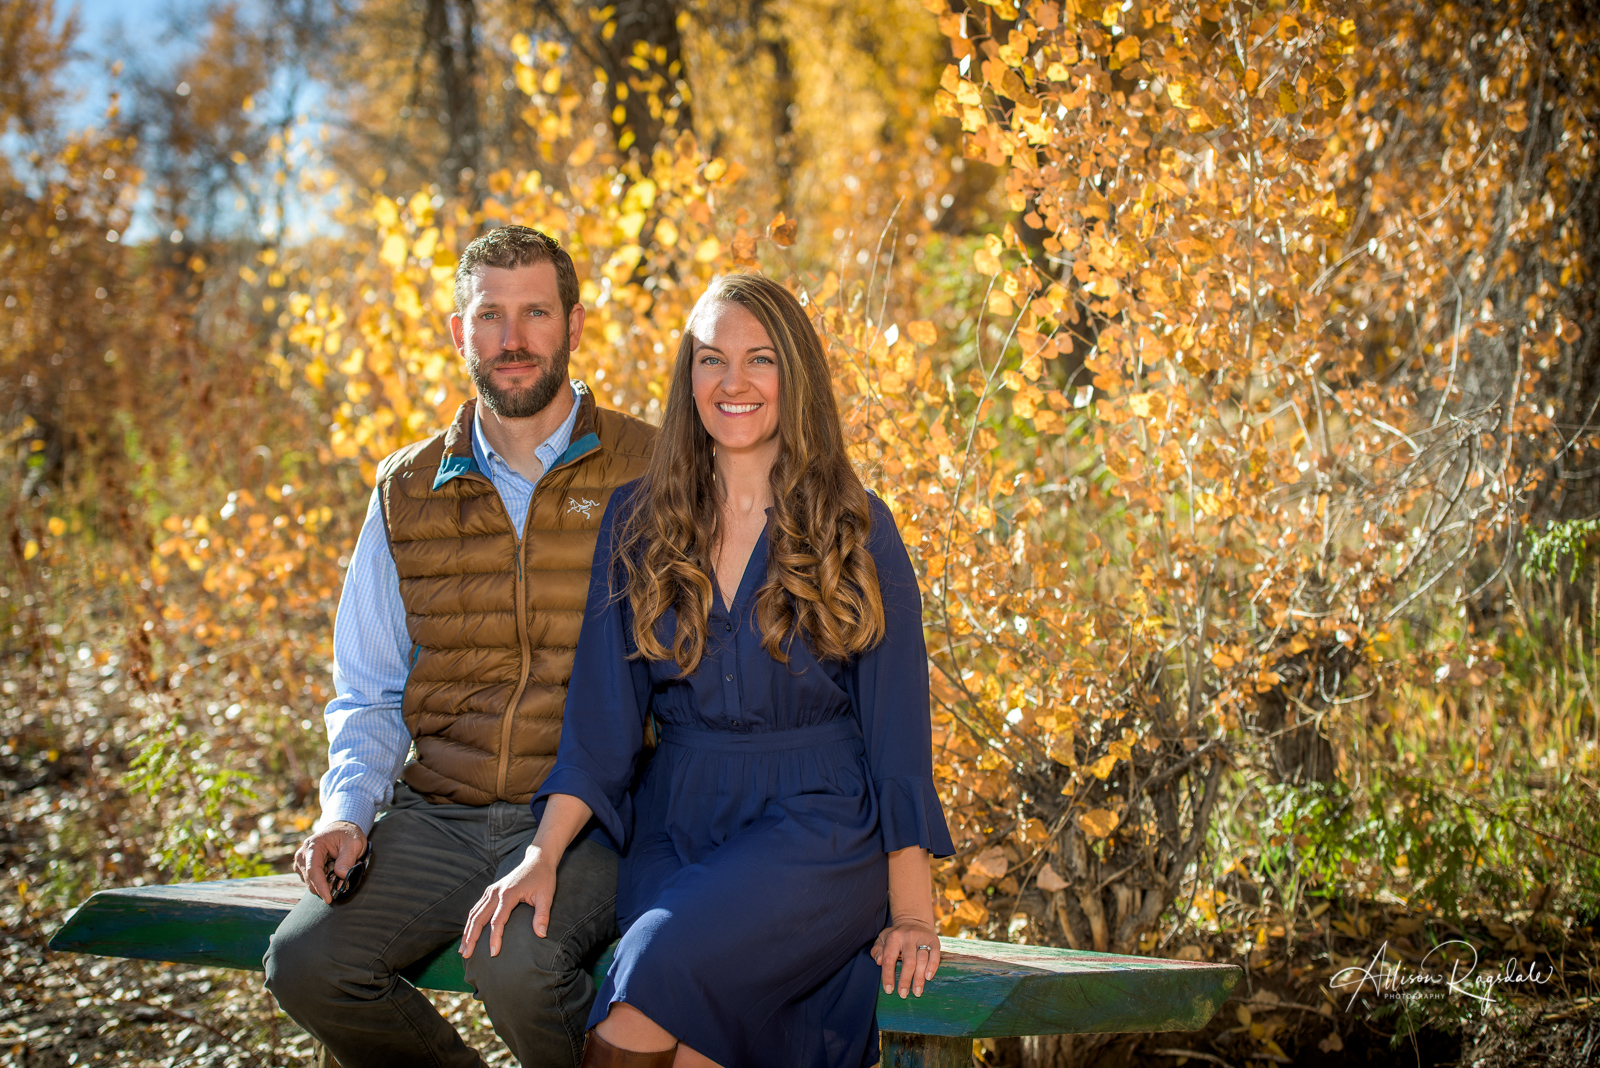 The Cheatham Family's Fall Portraits | Durango Colorado Photographed by Allison Ragsdale Photography. Durango Photographer